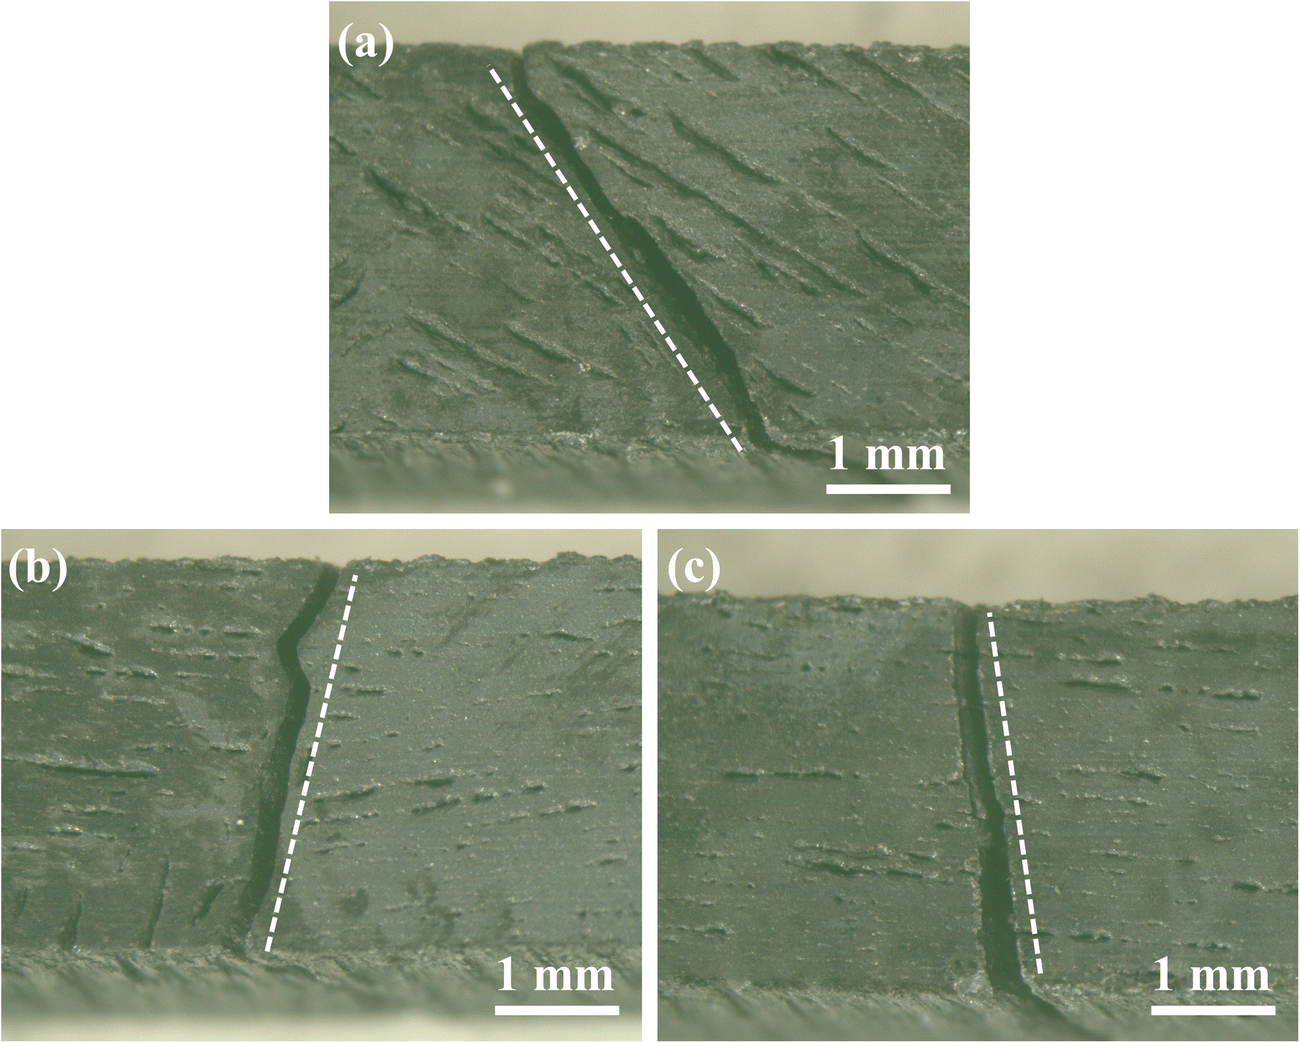 Macroscopic carbon nanotube assembly/silicon carbide matrix